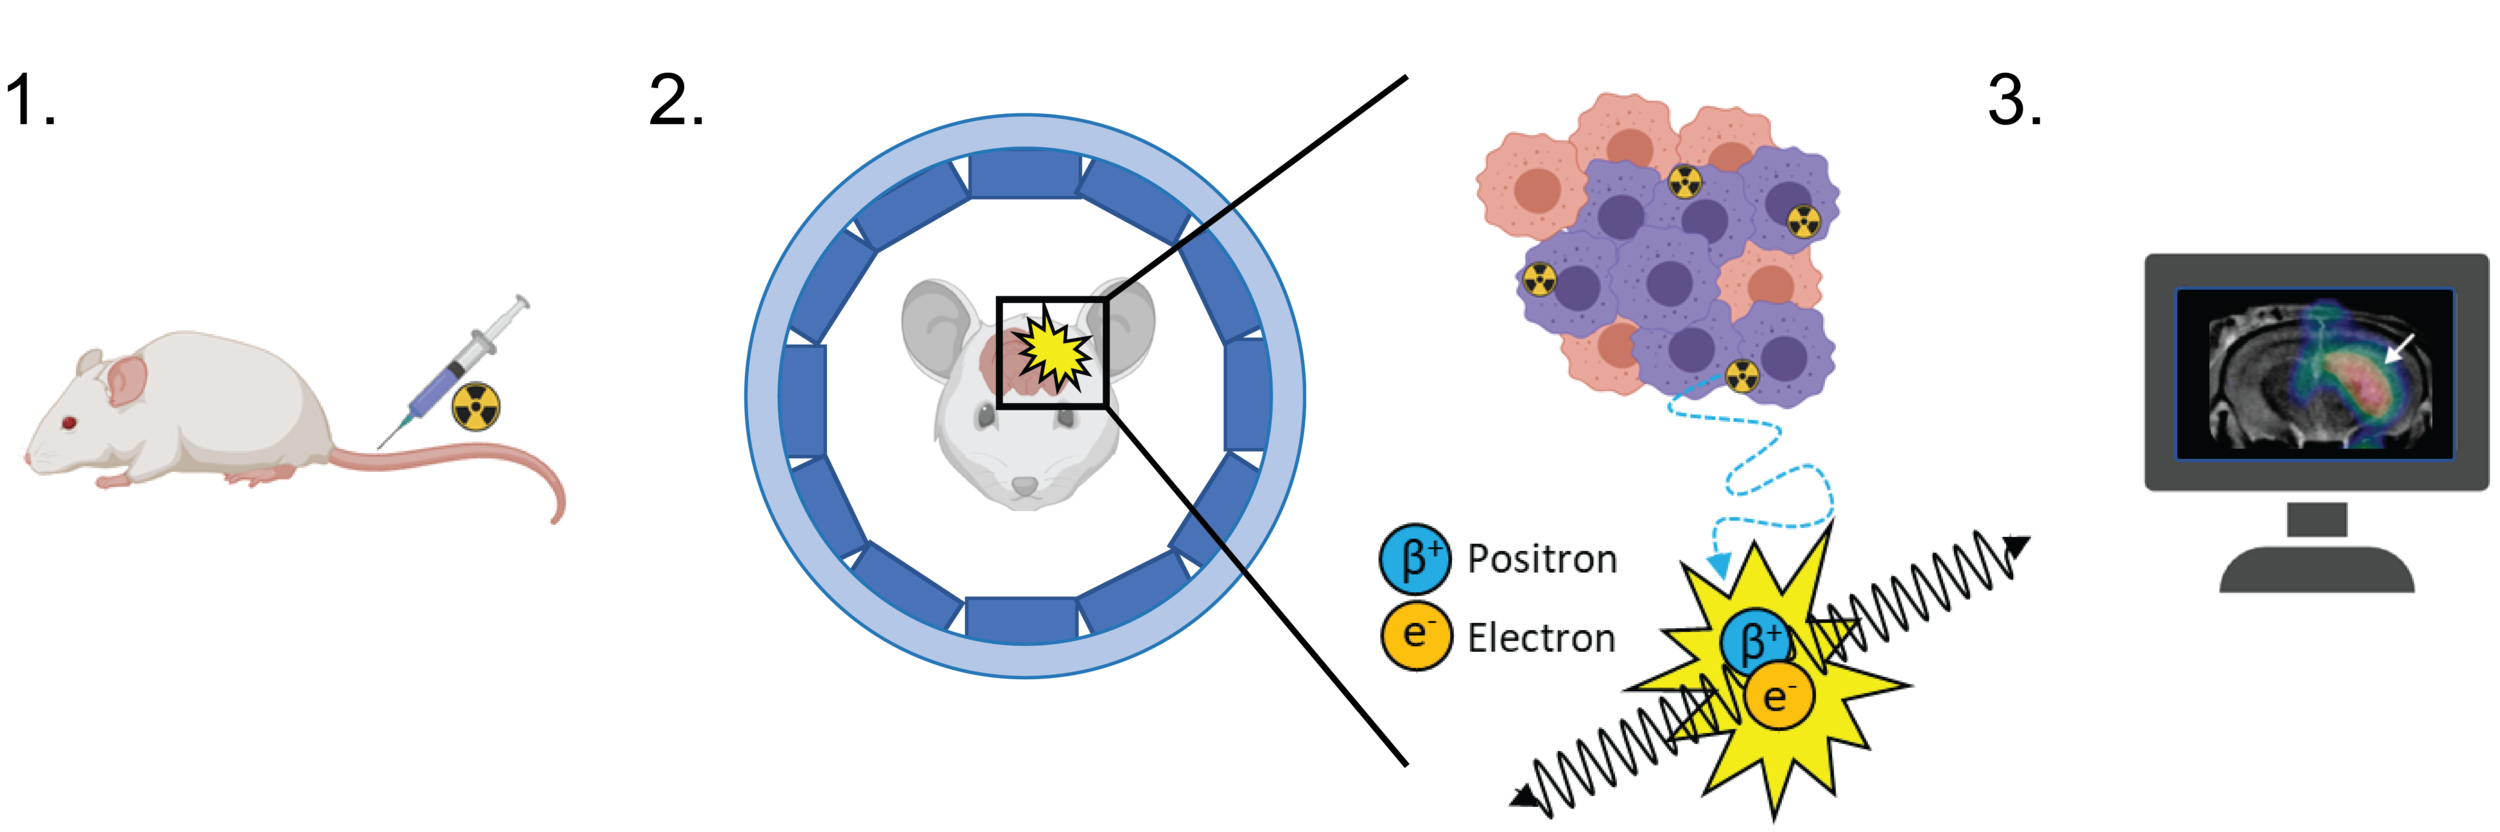 Figure 1. Preclinical PET imaging.  Prior to acquiring a PET image, a radiotracer is injected into the subject ( 1 ). Radiotracers are made by attaching a radioactive atom (radionuclide) to a scaffold that targets a biological process of interest. As the unstable radioactive atom decays it emits a positron (the antimatter equivalent of an electron), which travels a shorts distance (~1 mm) before colliding with a near-by electron ( 2 ). Upon collision, these two particles undergo a process called 'annihilation', releasing two gamma rays at ~180 degrees to one another. The detection of these gamma rays by a PET scanner allows for the origin of annihilation to be calculated, subsequently providing the precise location of the radiotracer. Computer processing enables multiple annihilation events to be processed, building a 3D 'map' of radioactivity inside the body – the PET image ( 3 ).